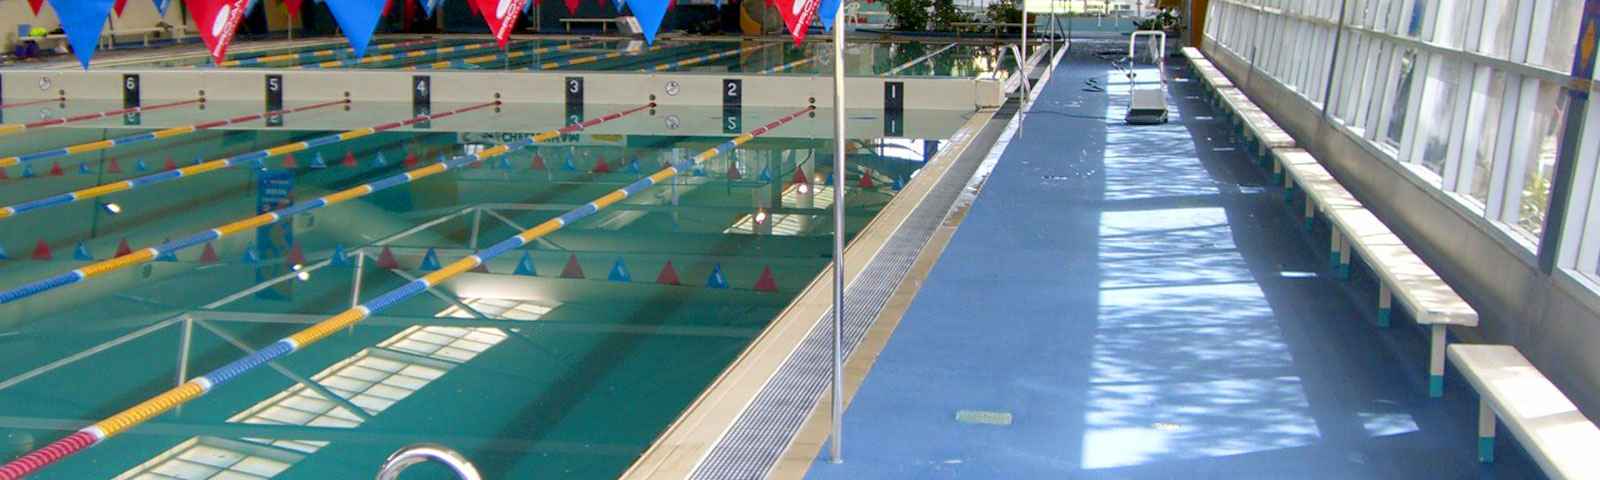 Aquatic and Recreation Centre Flooring